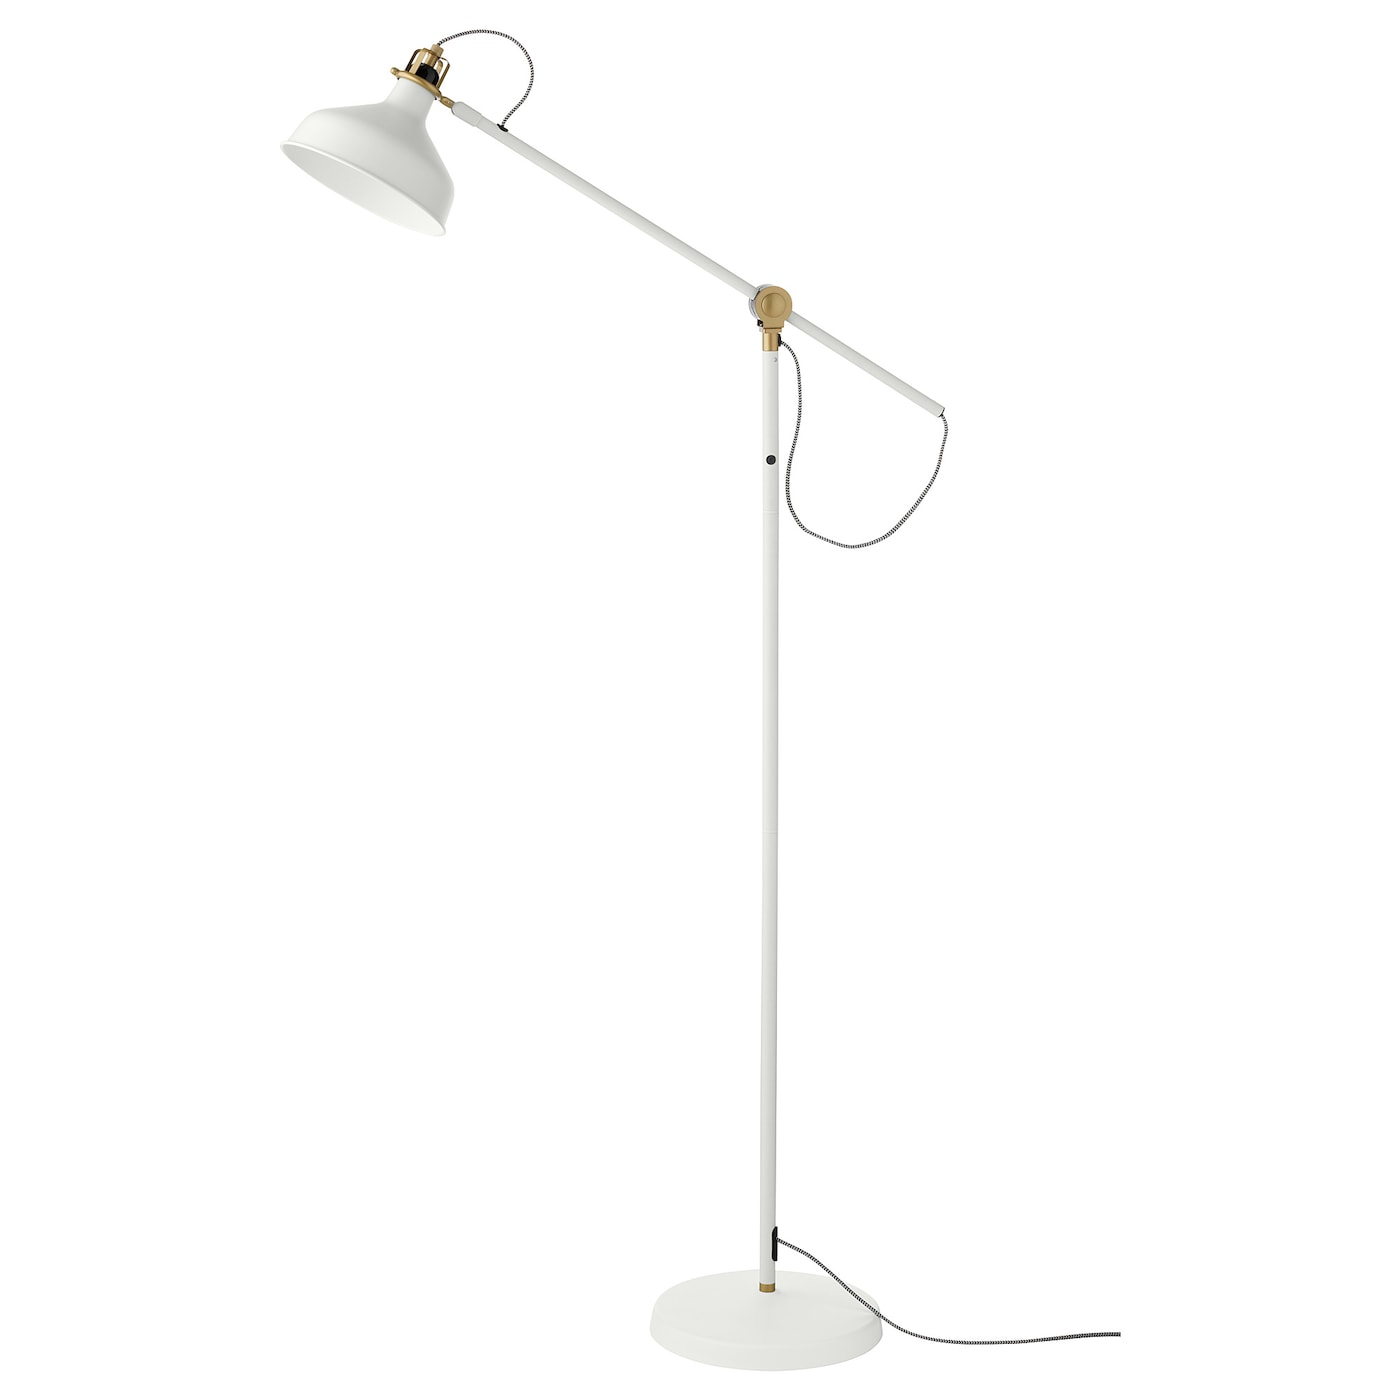 IKEA RANARP floor/reading lamp Provides directional light, great for reading.